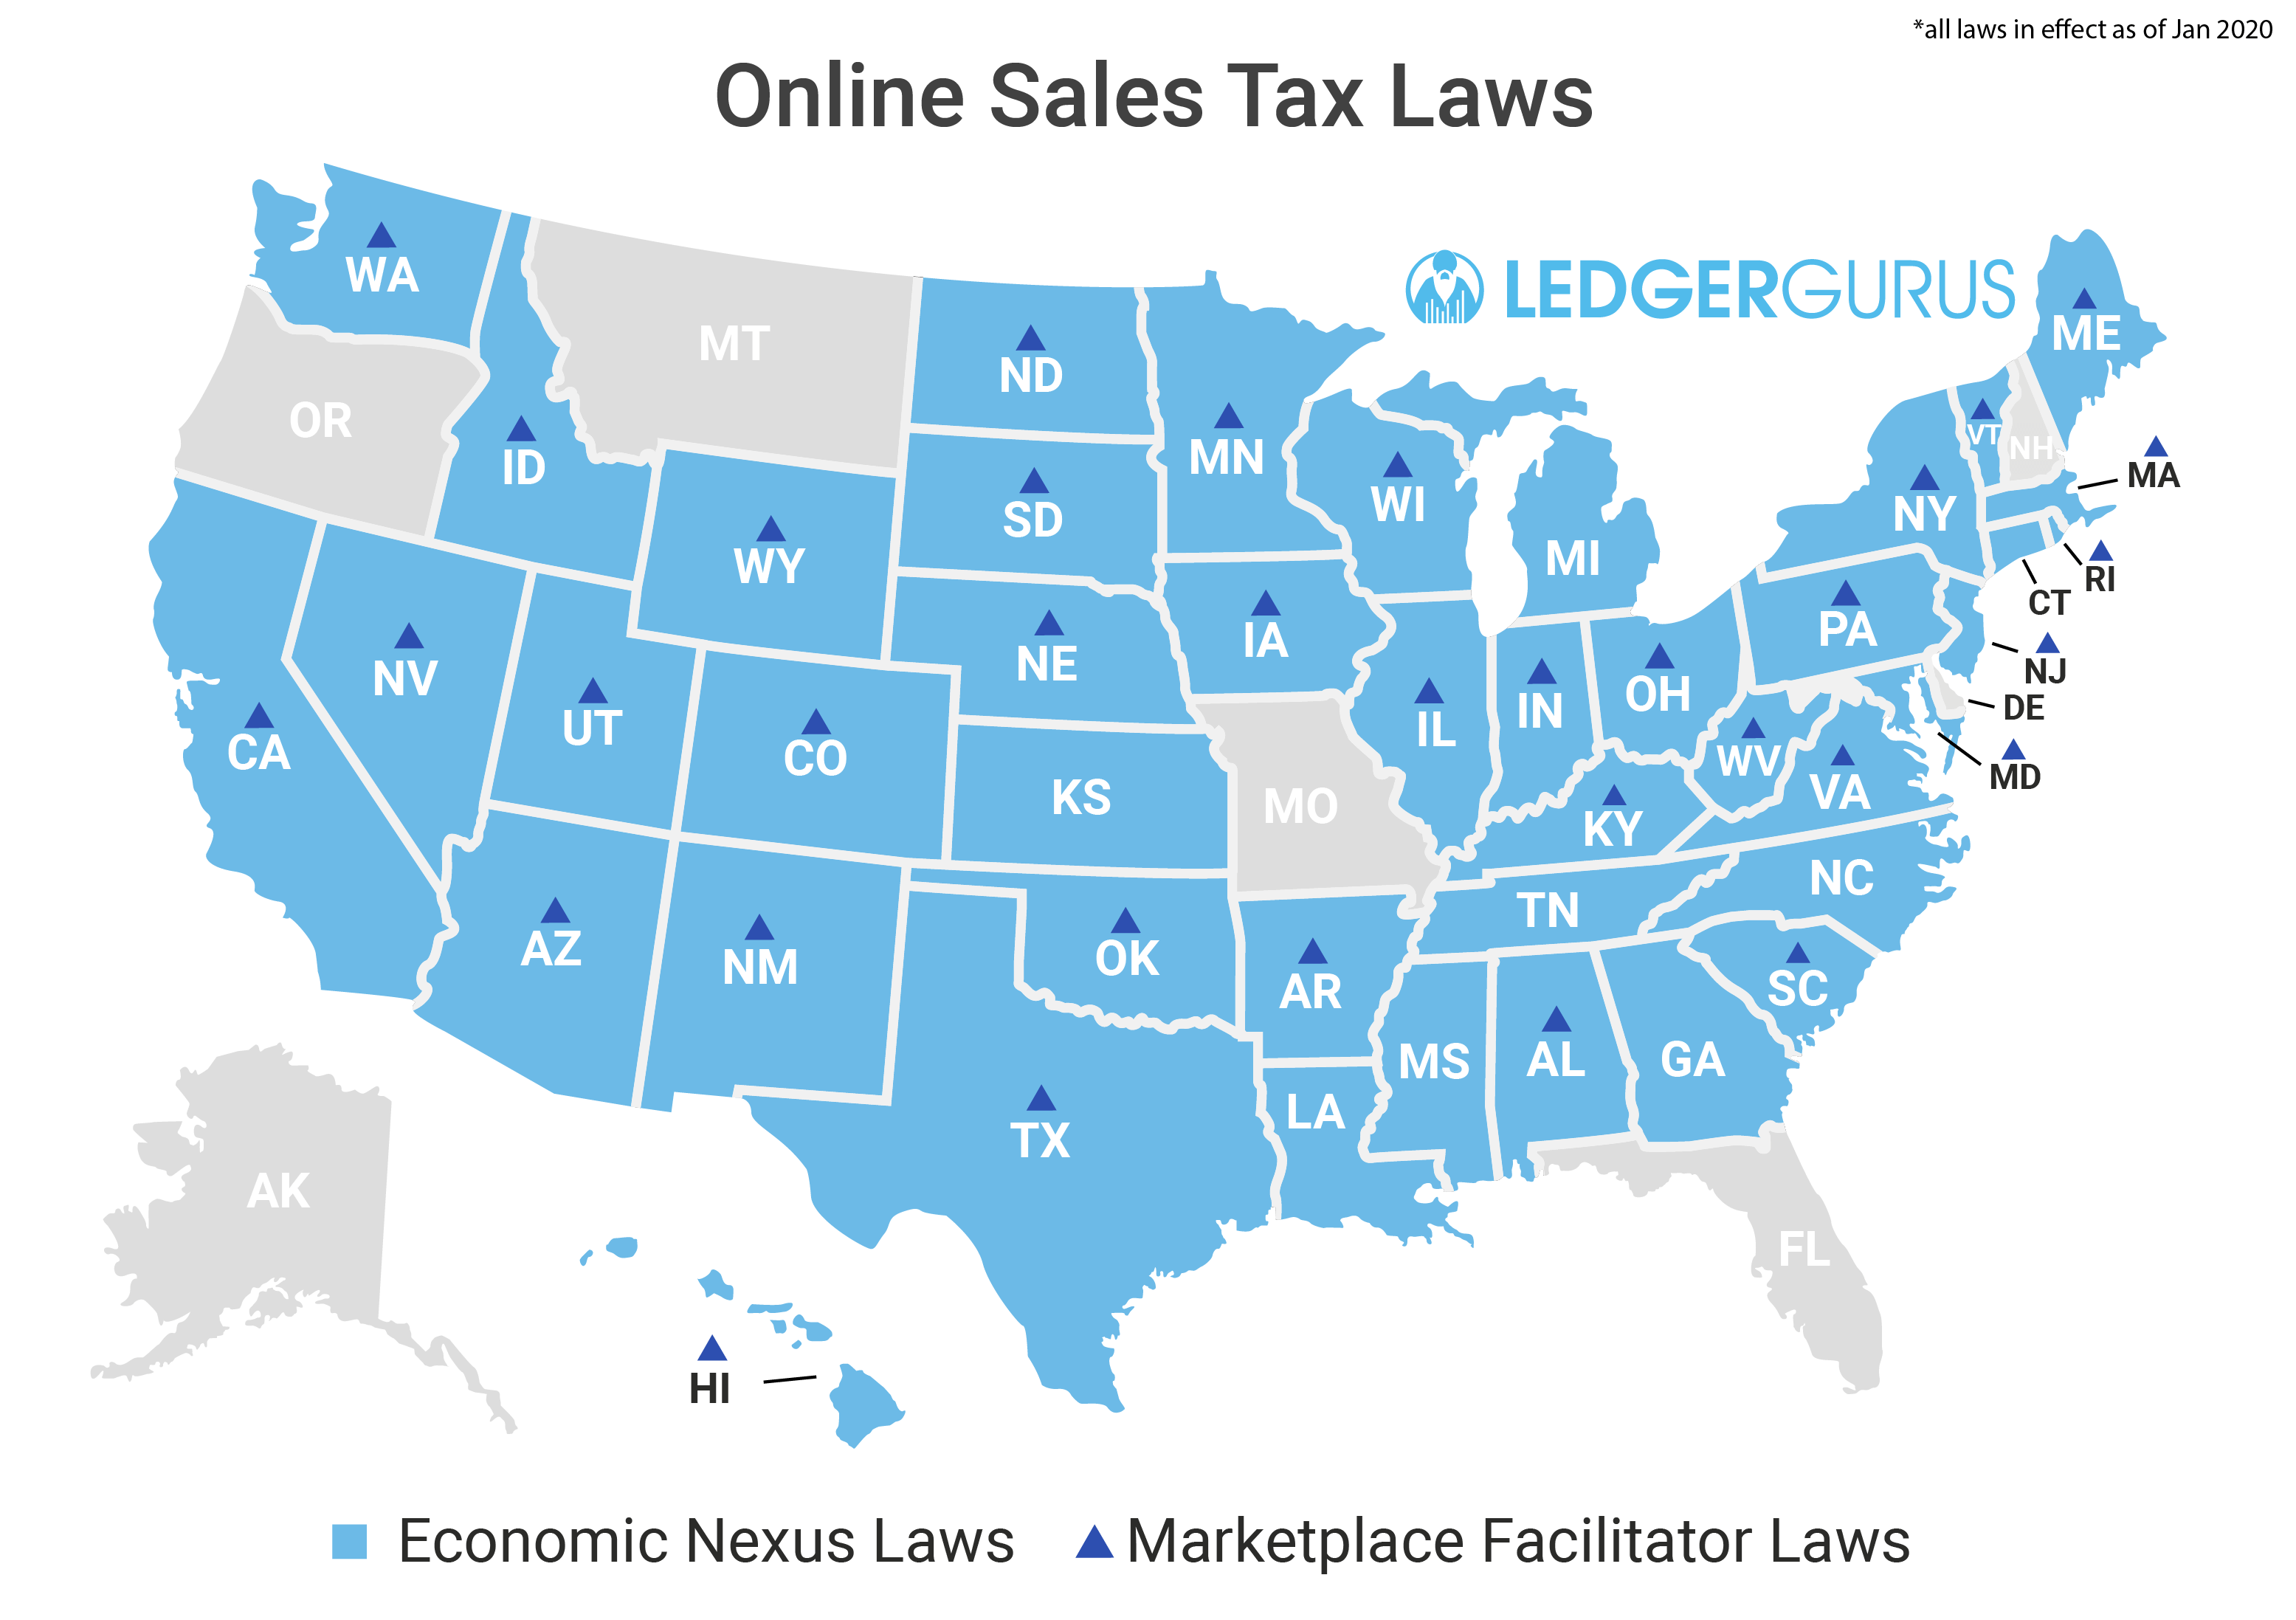 Nexus and marketplace facilitator laws map